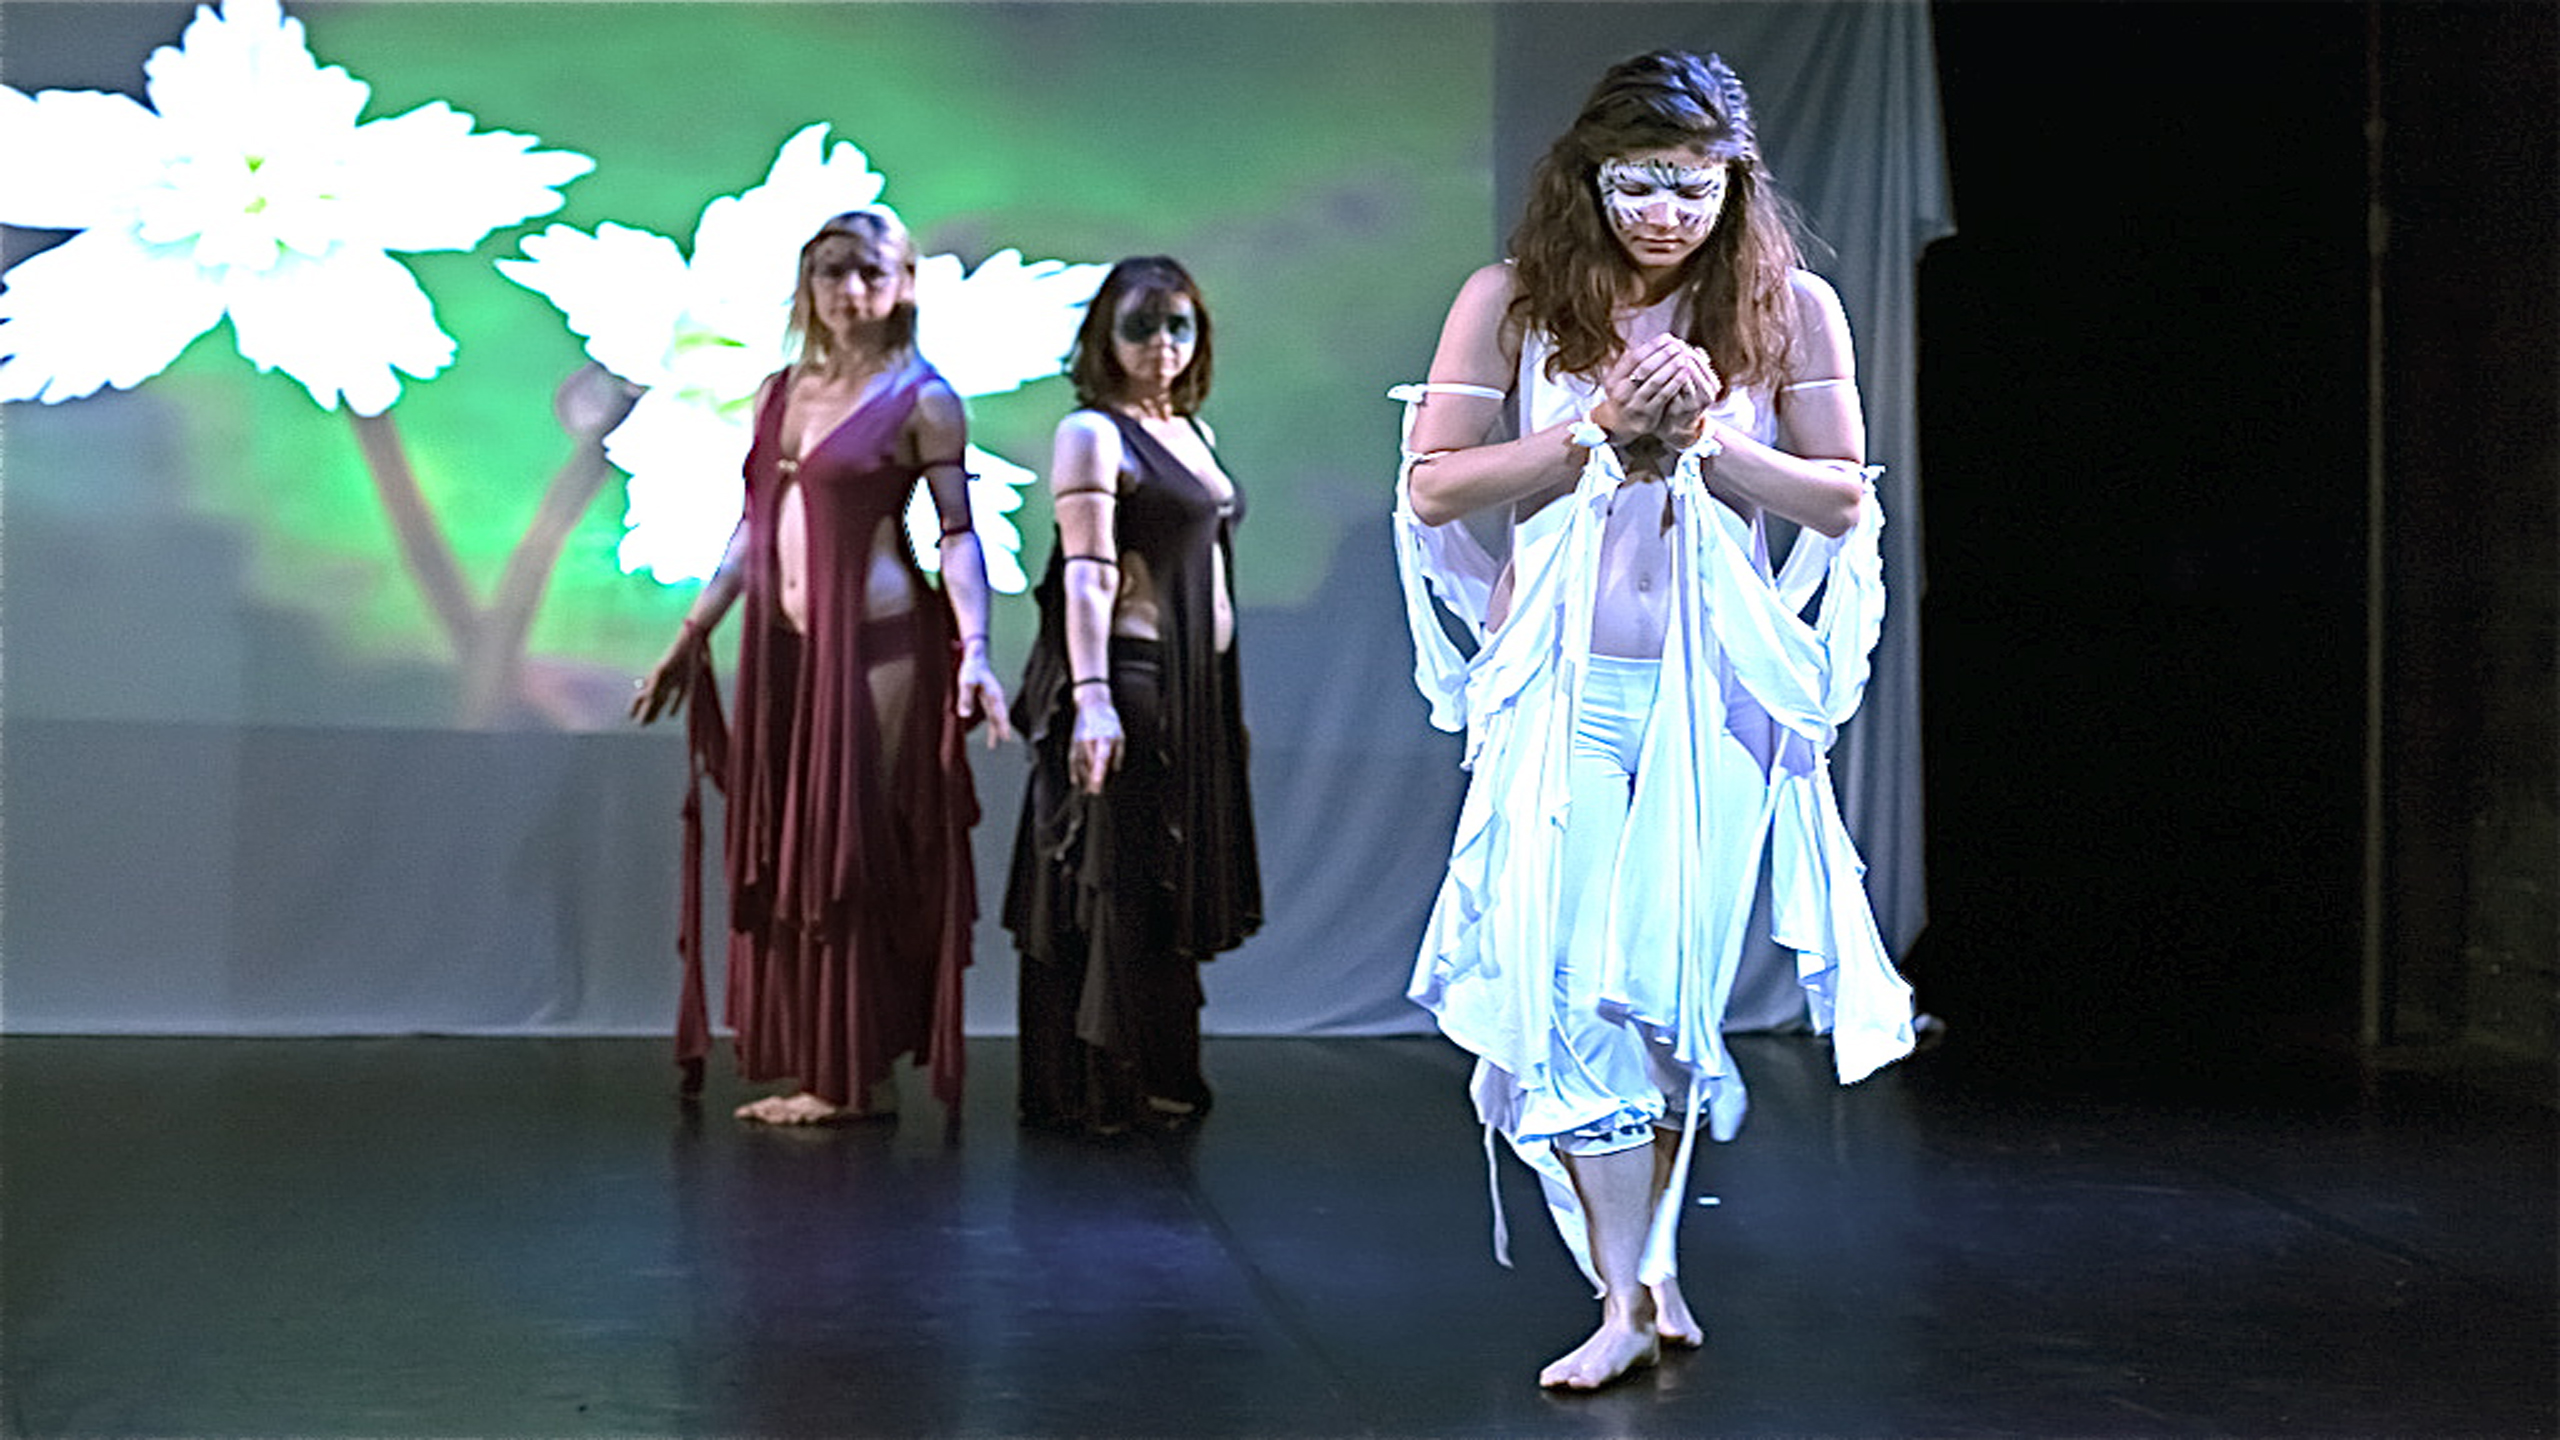 women in dance performance costumed by Accentuates Clothing